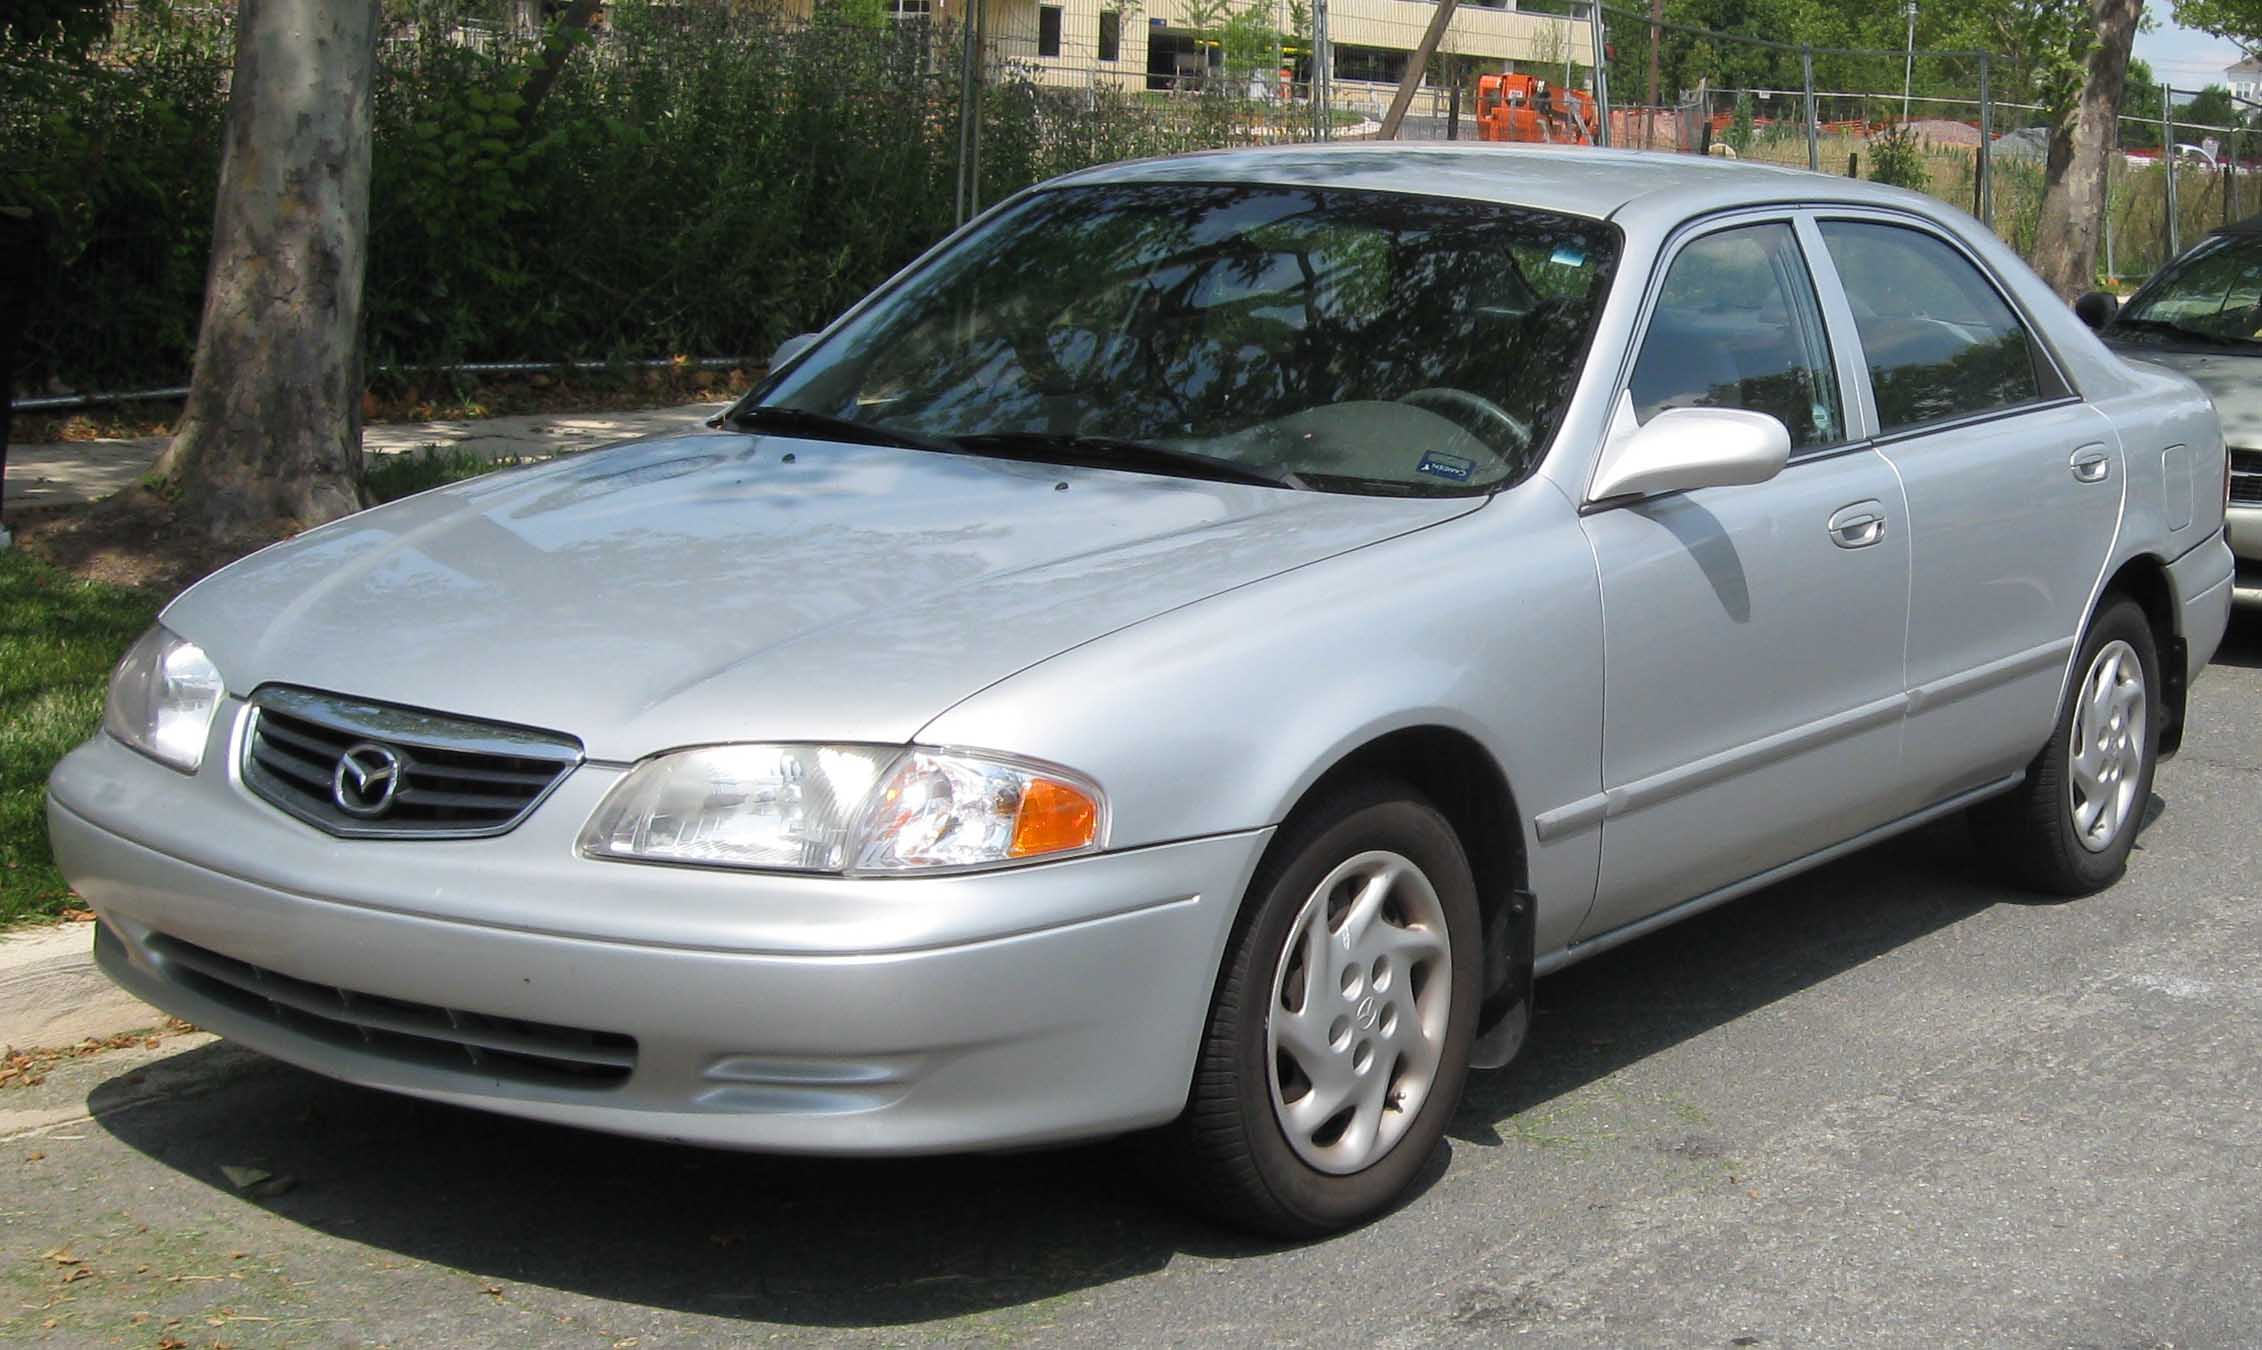 2001 Mazda 626 Photos, Informations, Articles - BestCarMag.com